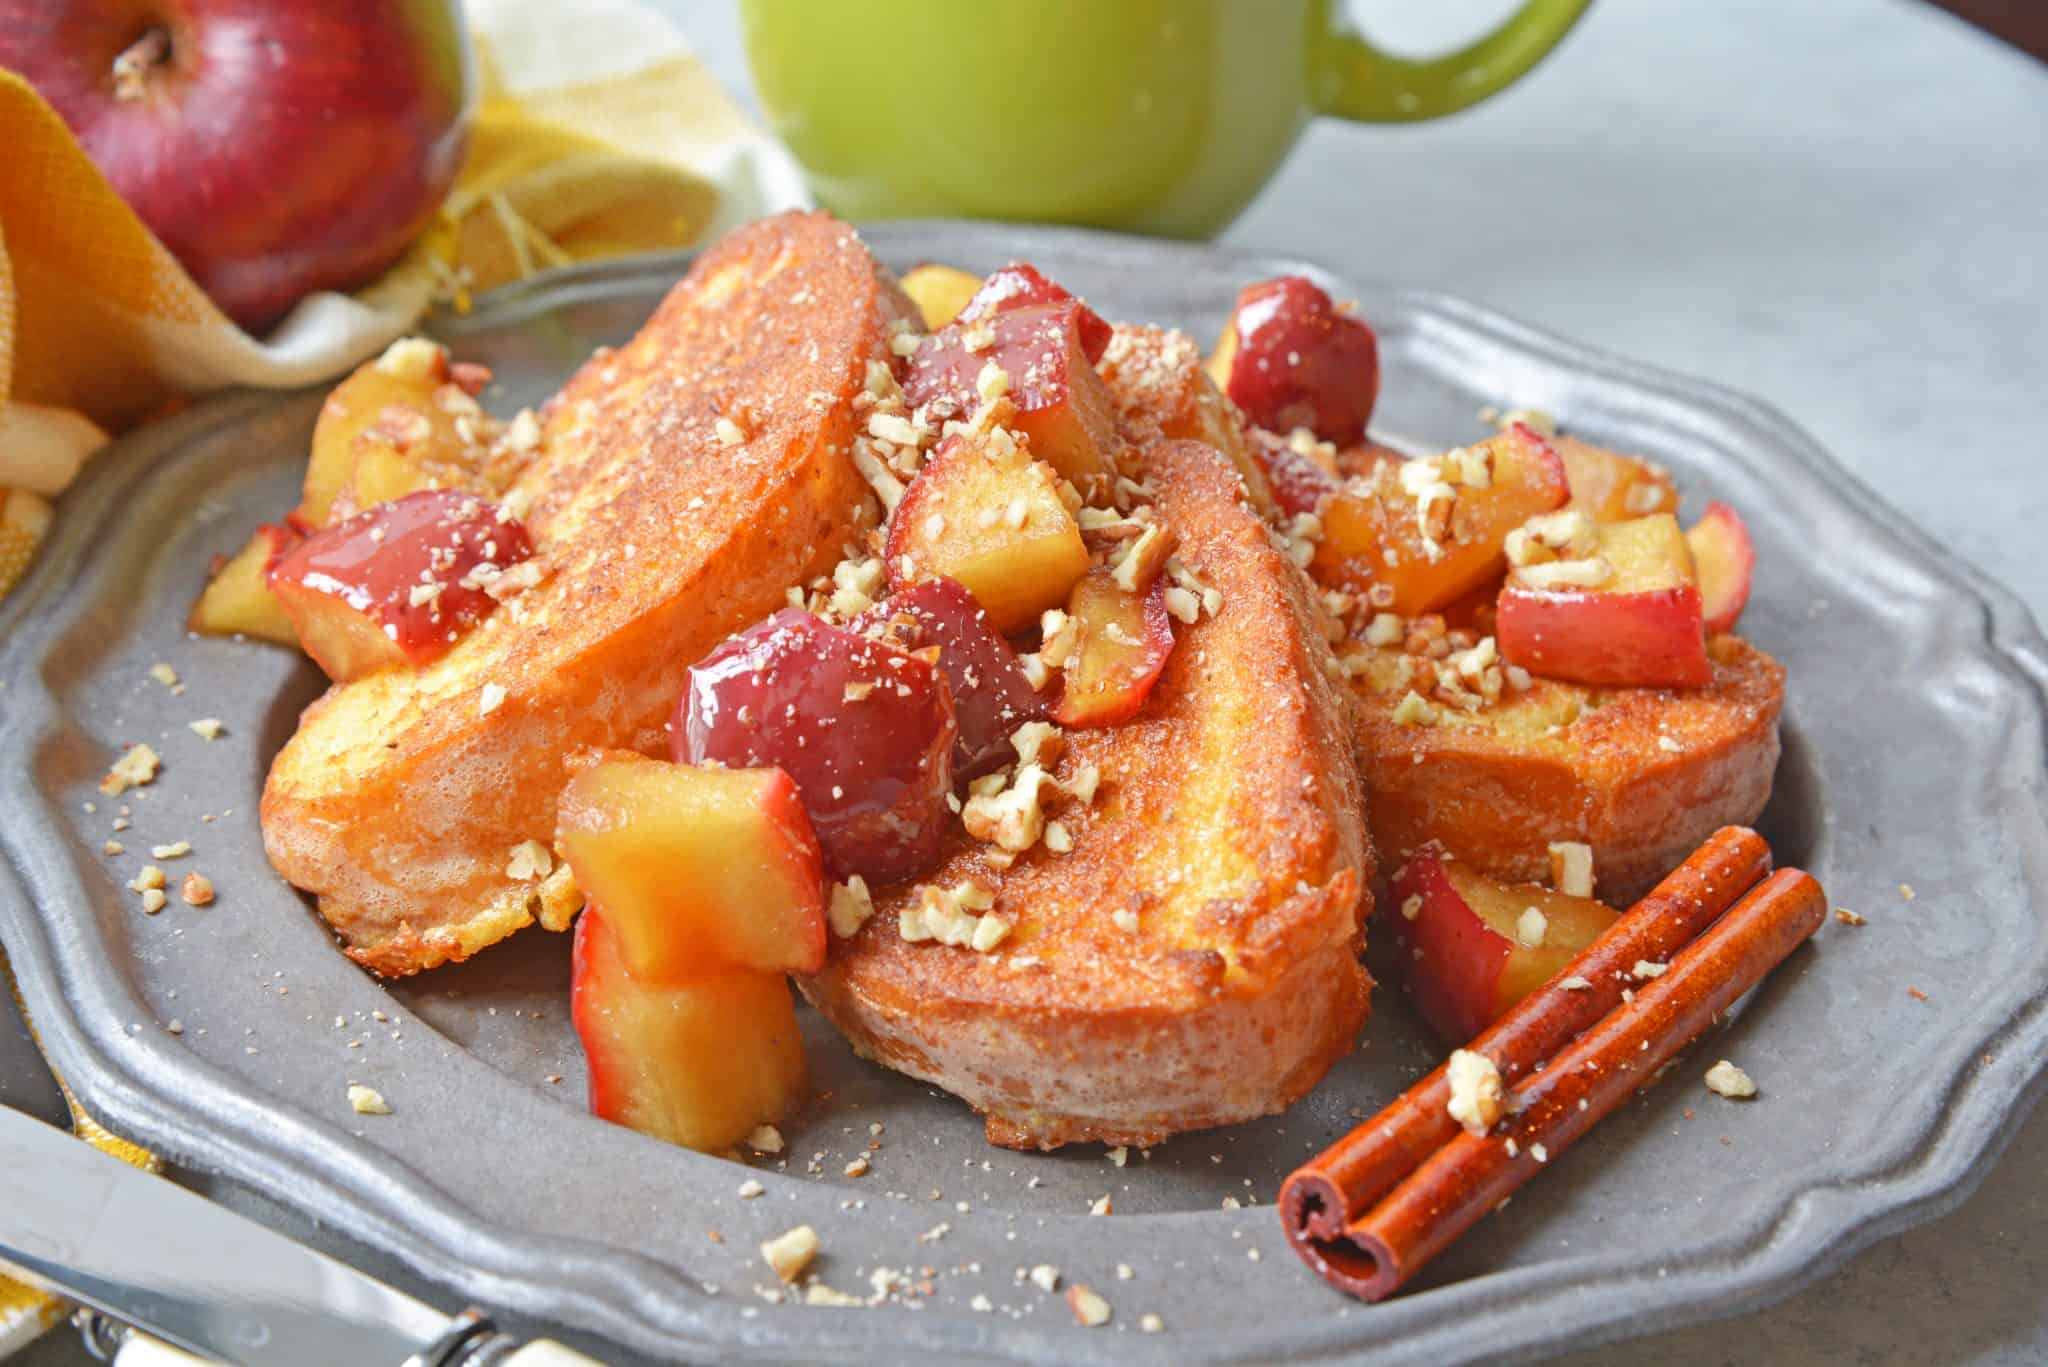 apple cinnamon french toast on a metal plate